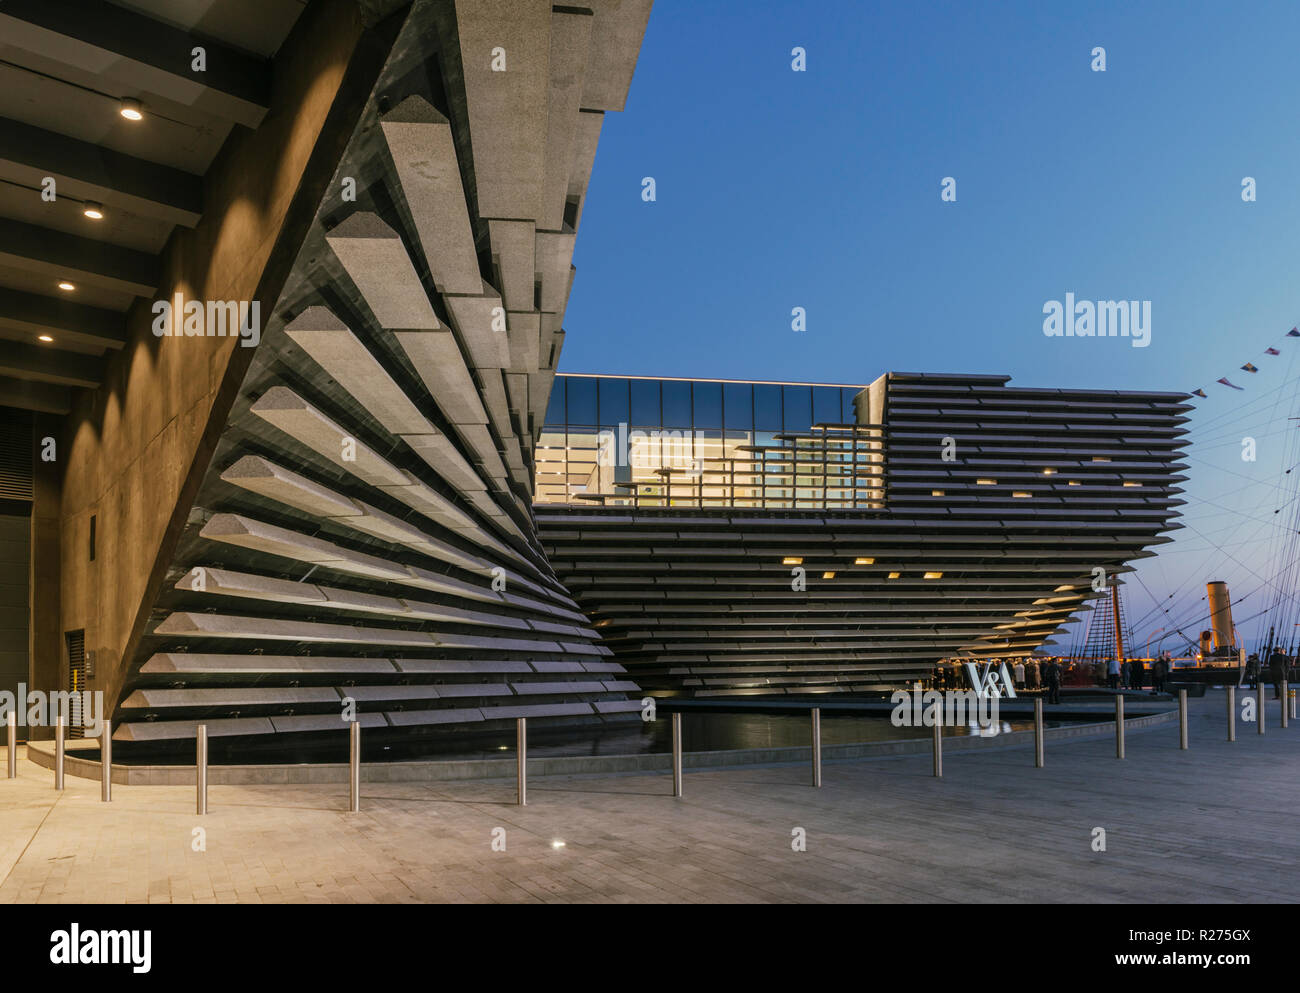 The new V&A design museum on Dundee's regenerated waterfront has already passed the 100,000 visitor mark within 2months of opening, Dundee Scotland UK - Stock Image